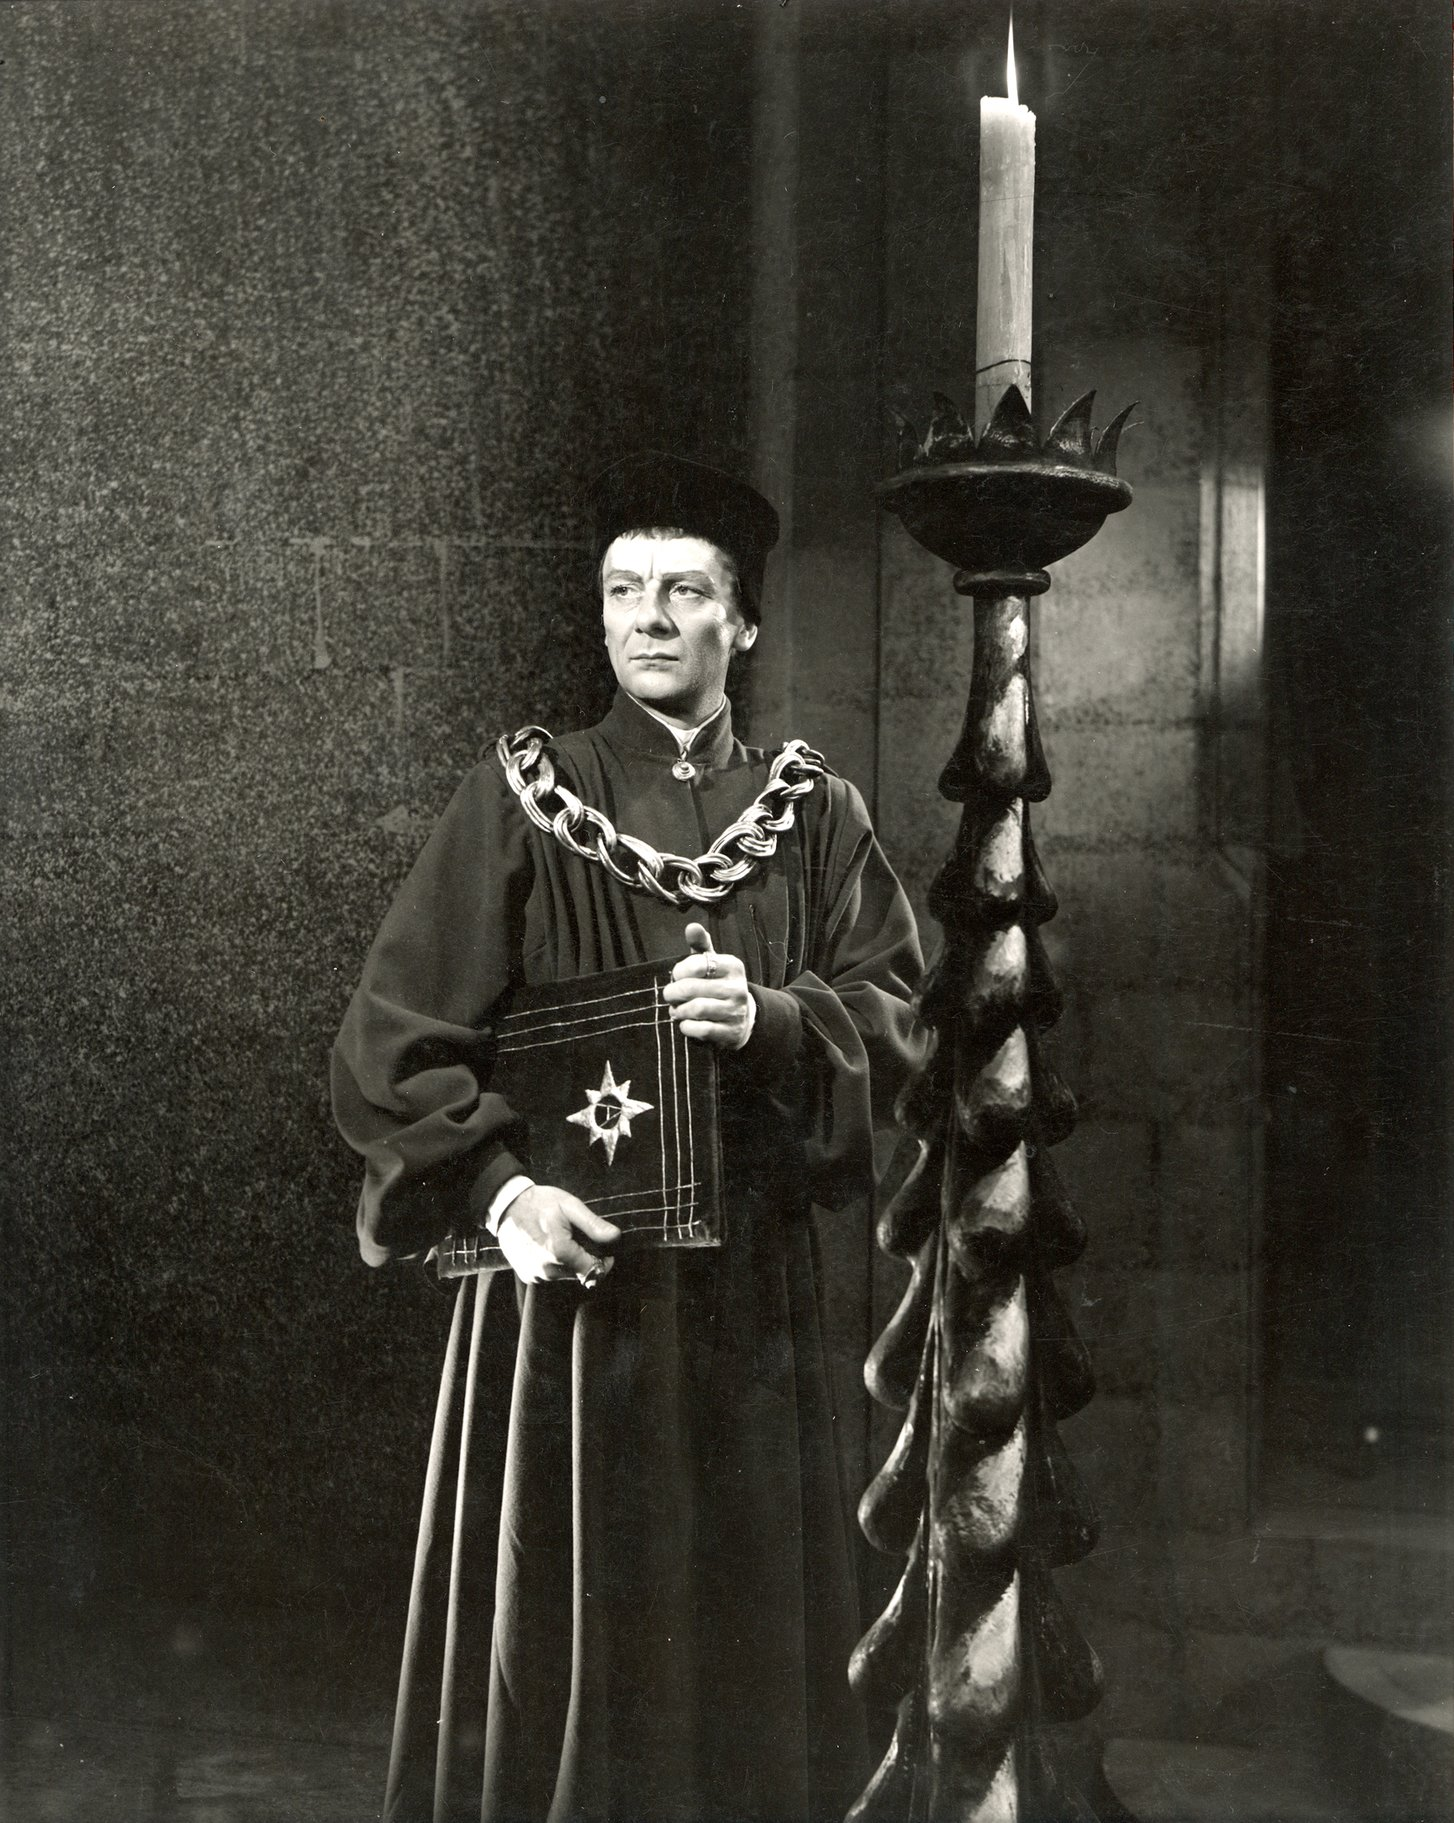 A man in robes and a thick gold chain.